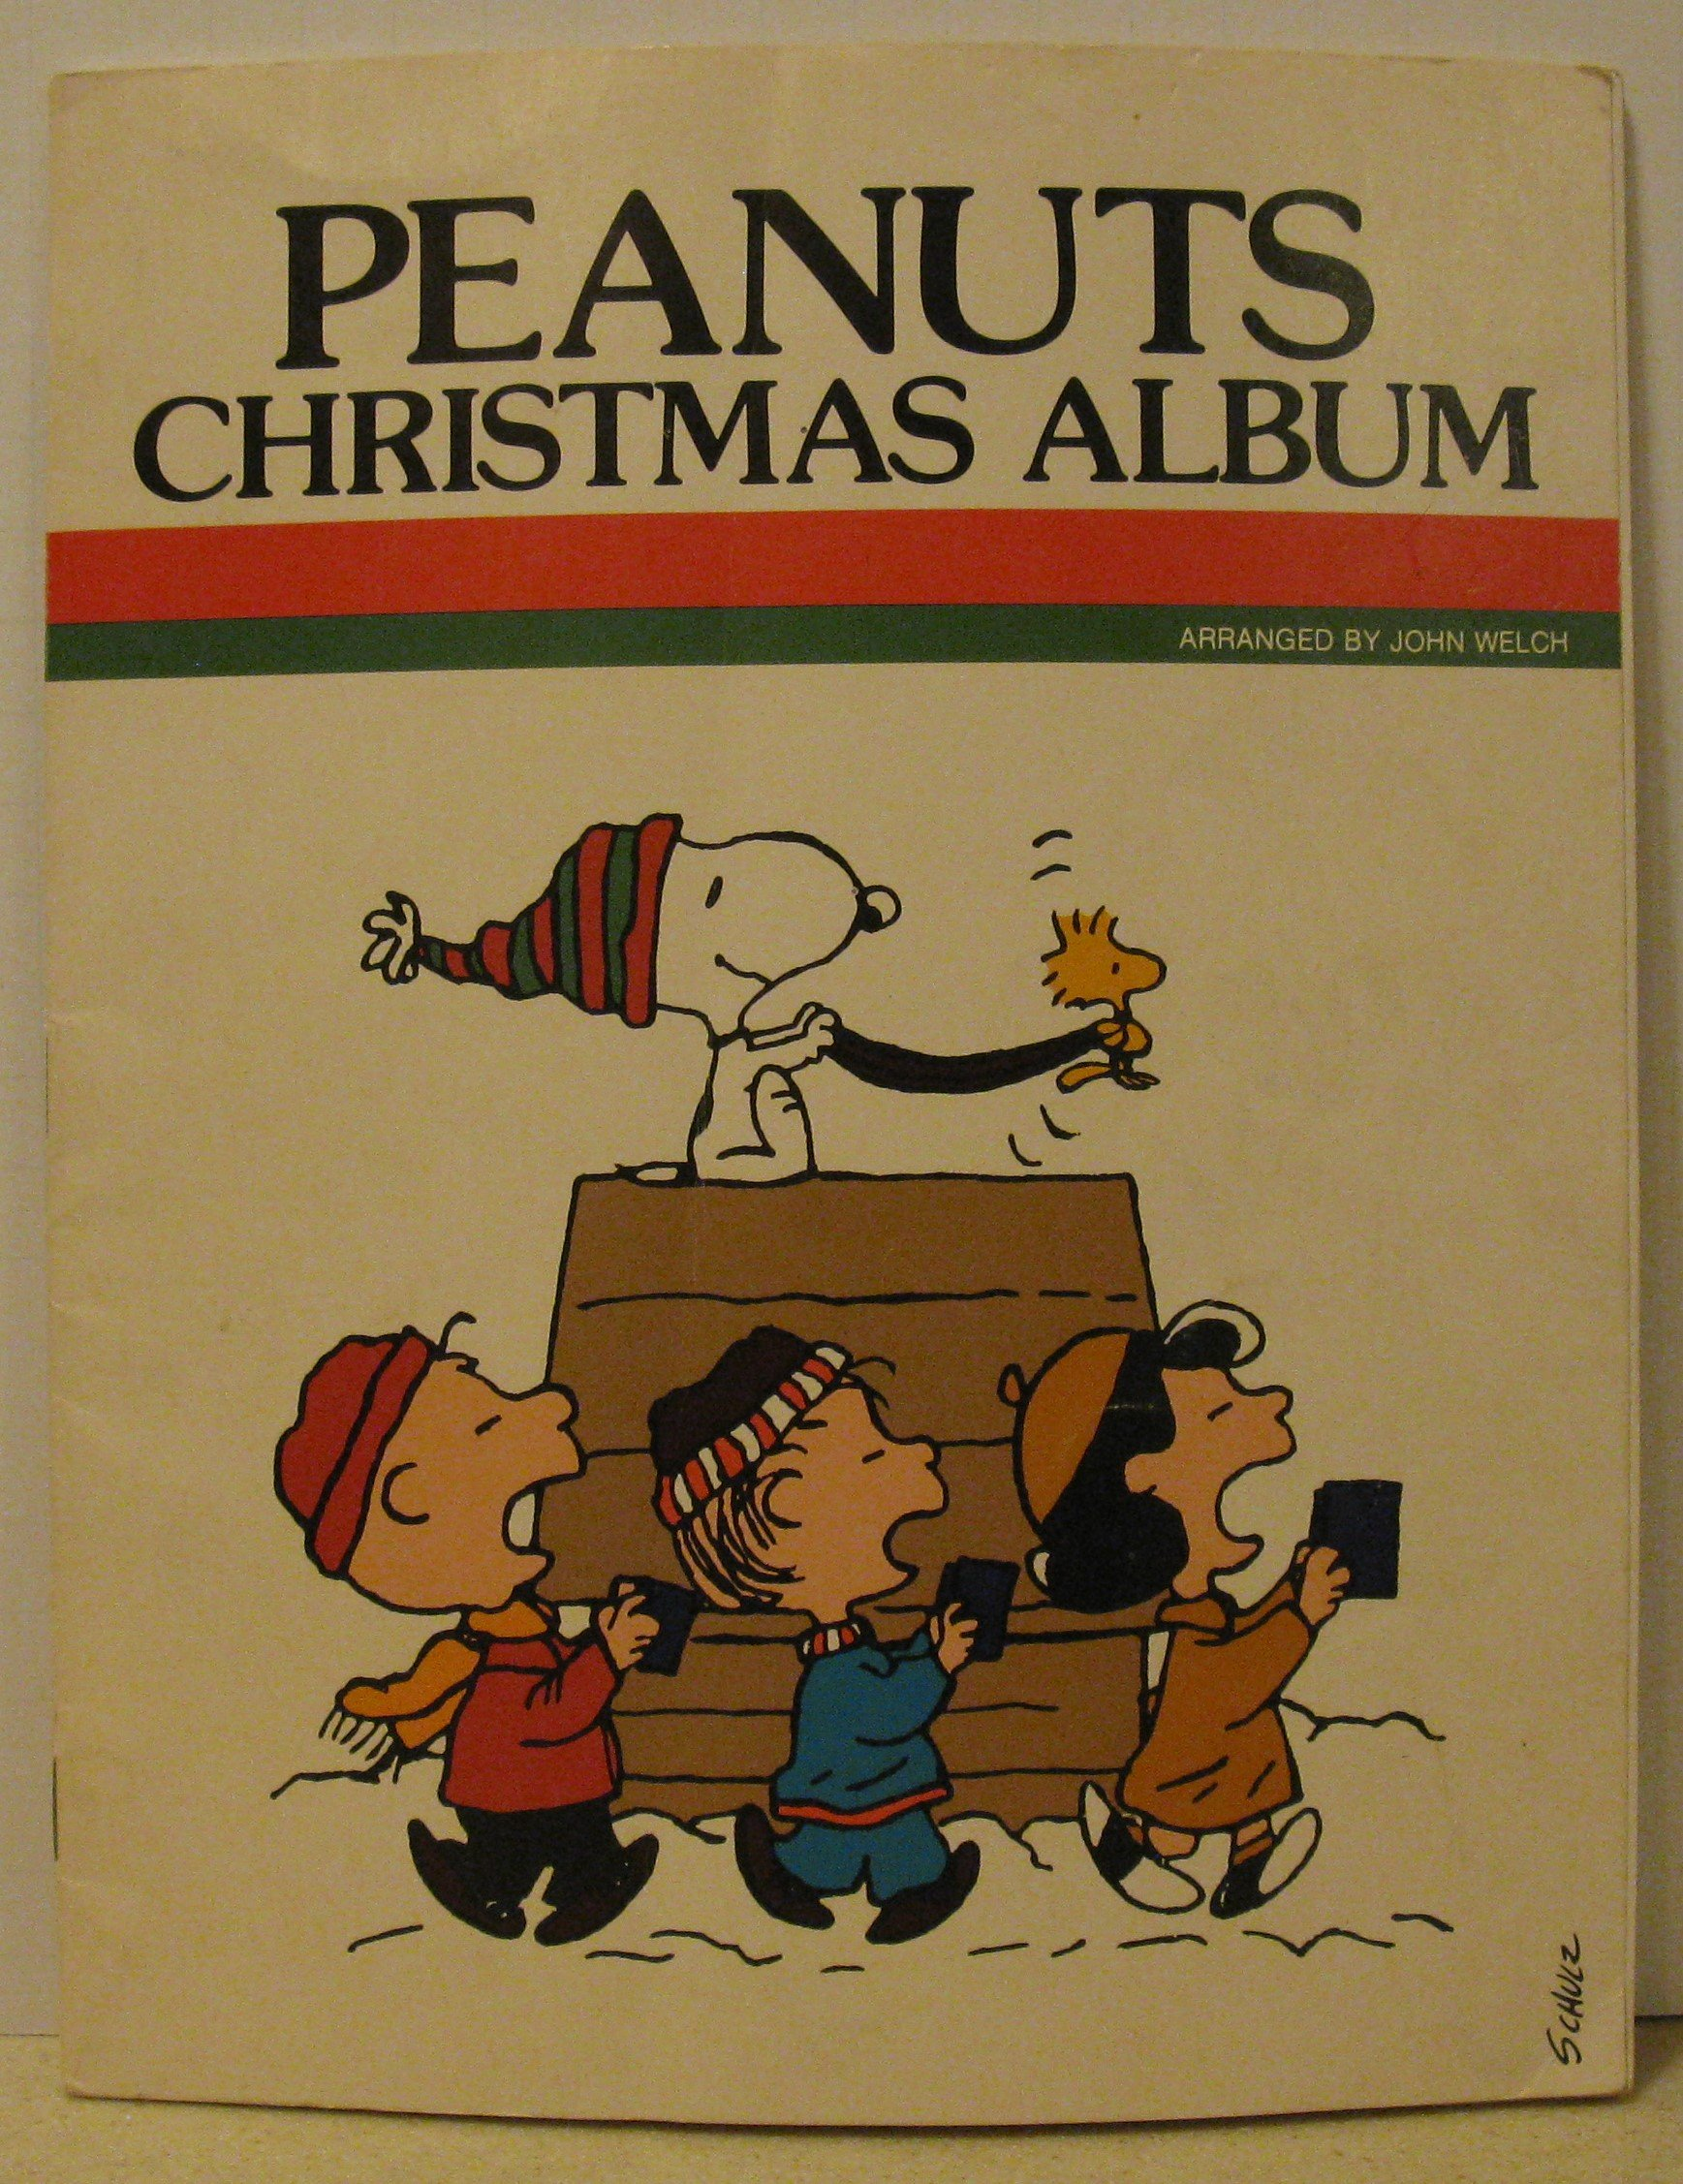 PEANUTS CHRISTMAS ALBUM: Amazon.co.uk: ARRANGED BY JOHN WELCH: Books